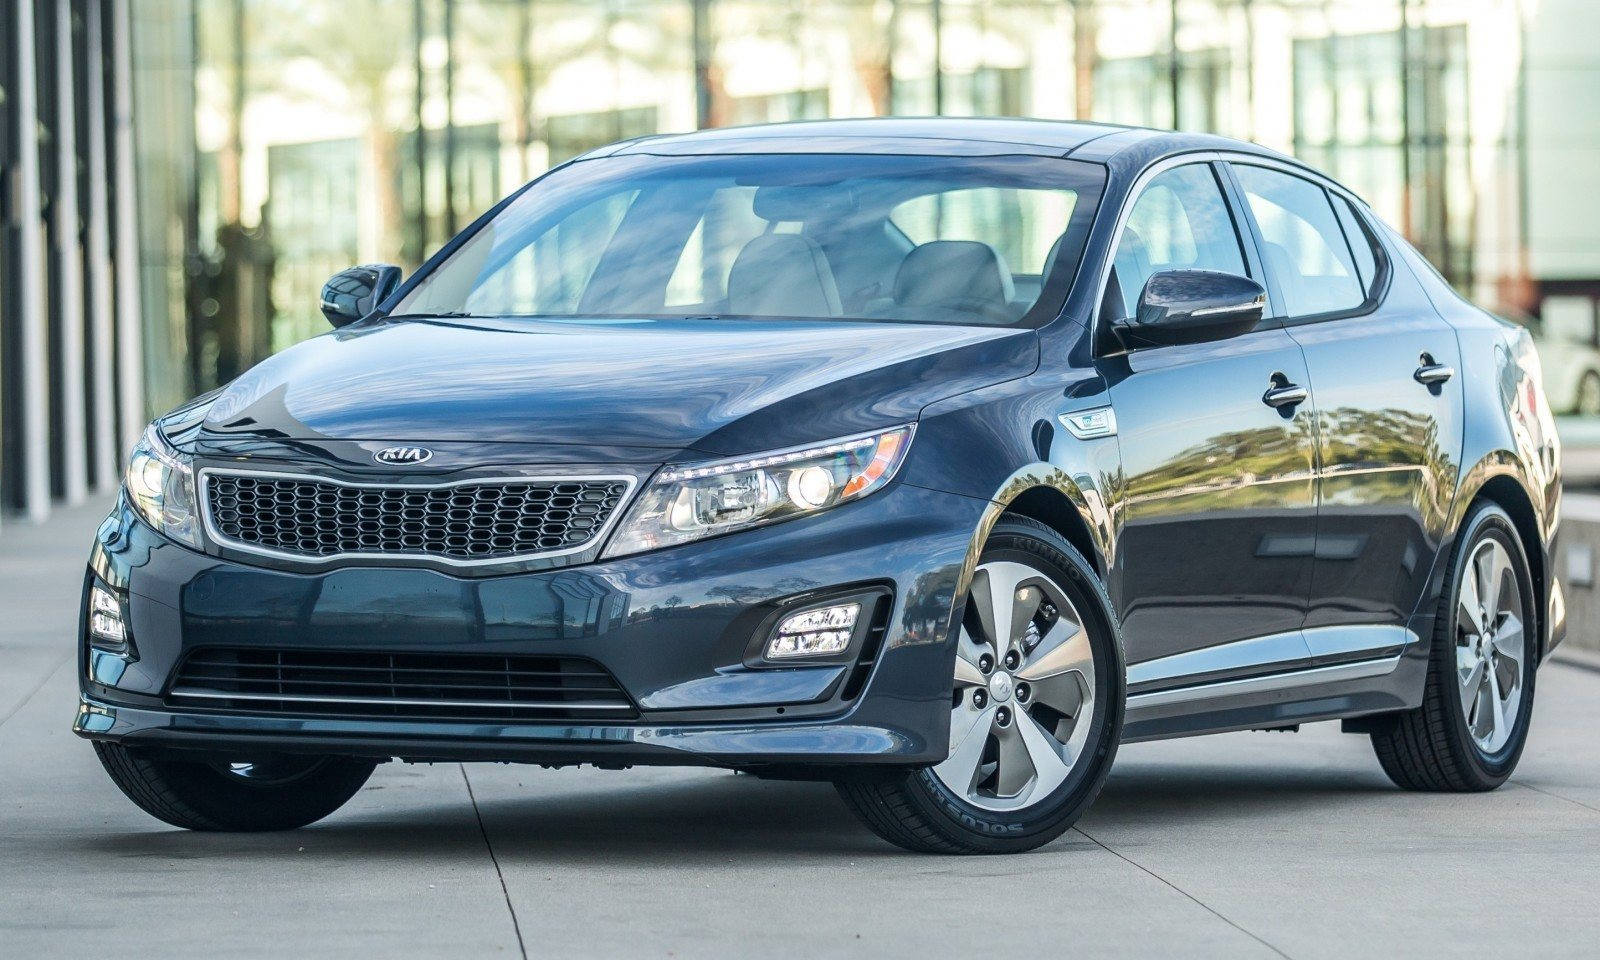 2014 Kia Optima Hybrid Updated With New Grille and LEDs Front and Rear - Specs, Features and Pricing 2